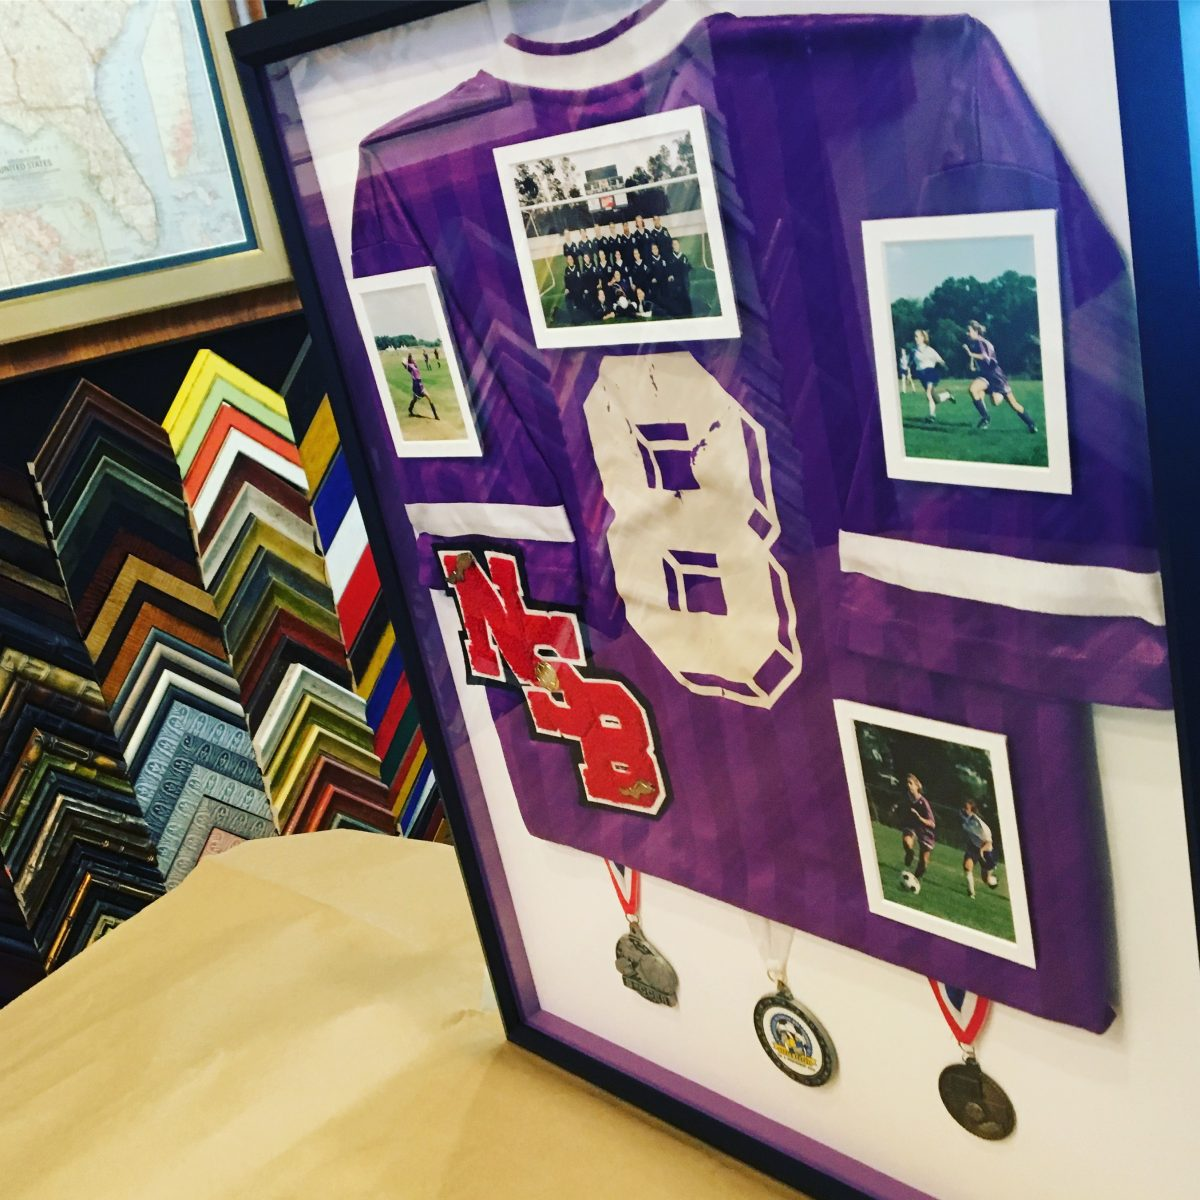 Jersey and Uniform Framing photo